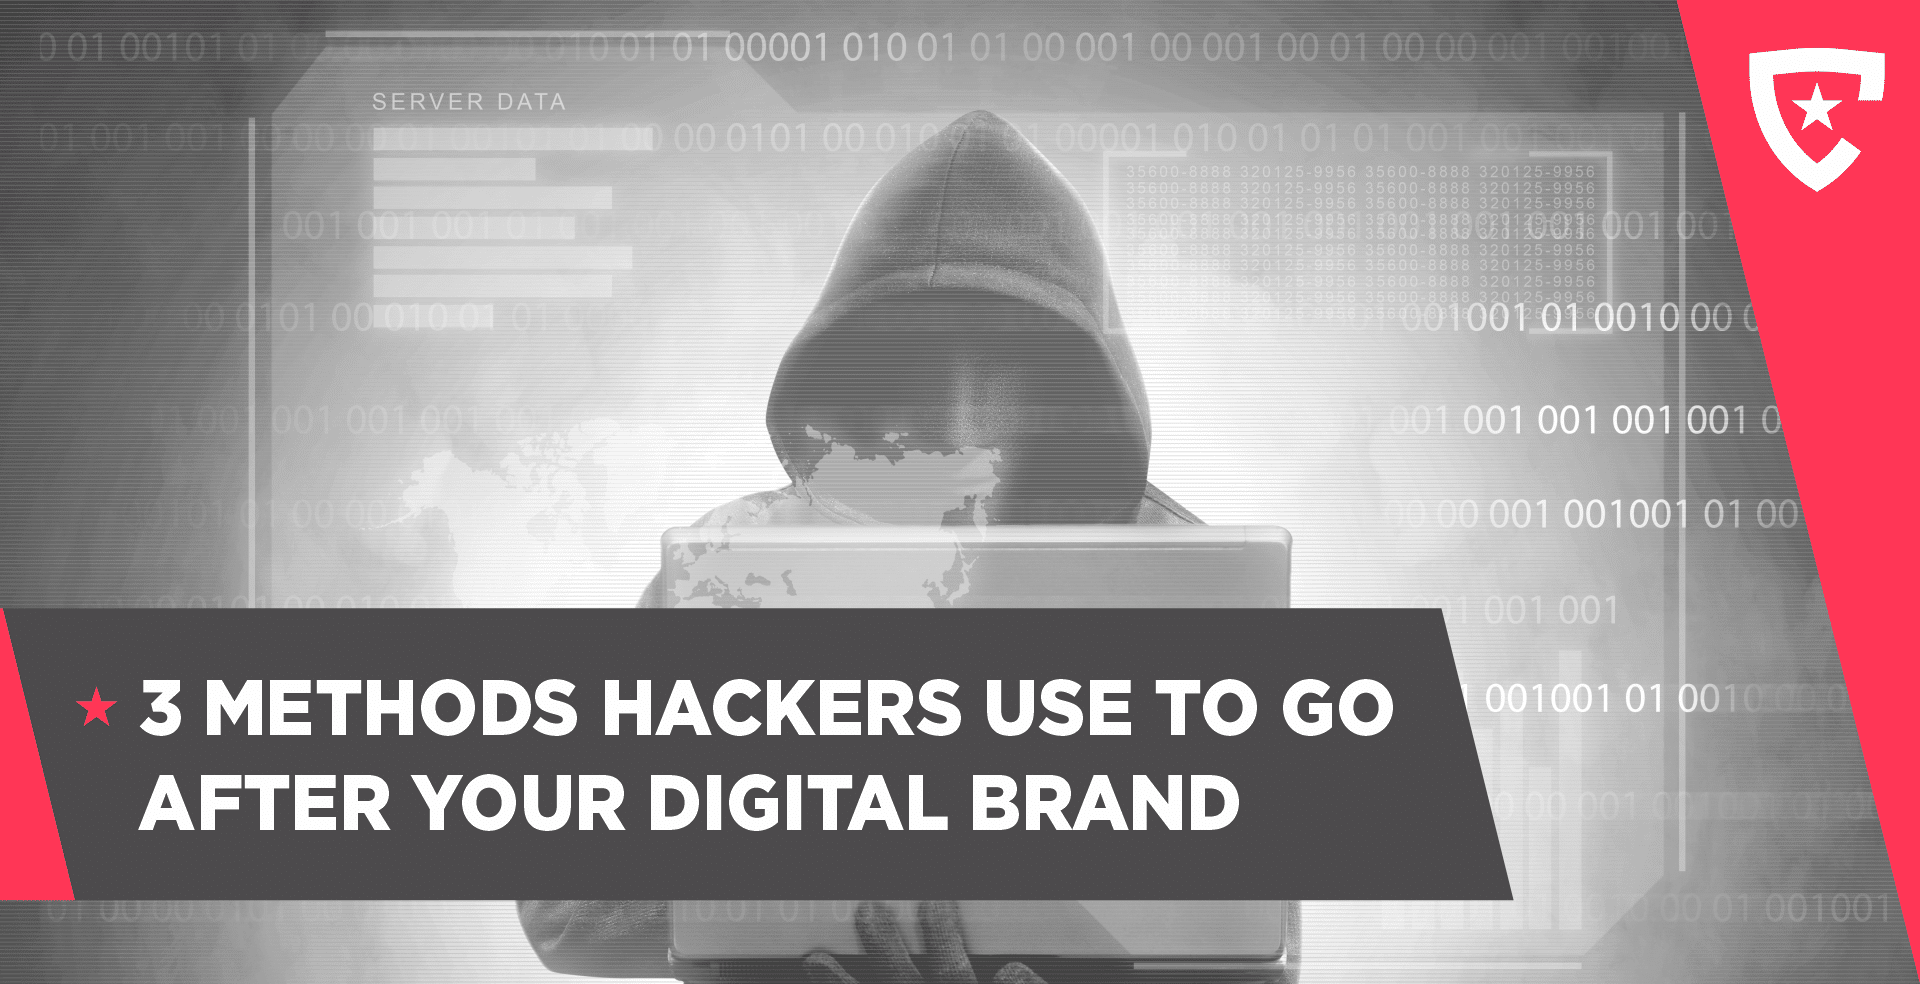 3 Methods Hackers Use to Go After Your Digital Brand